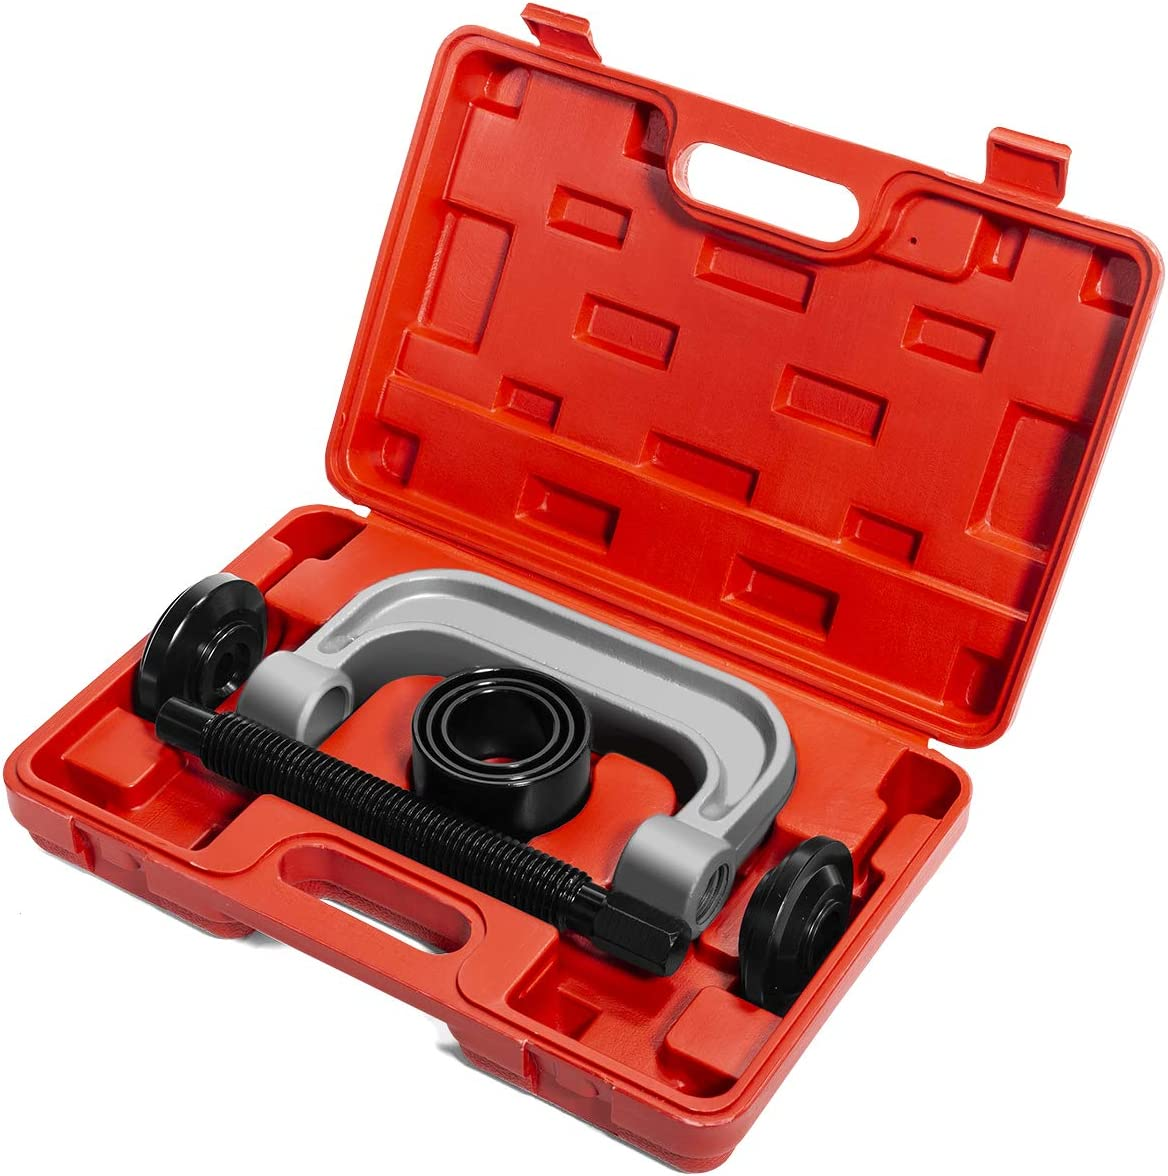 Ball Joint//U-Joint//C-Frame Press Service Kit 3-in-1